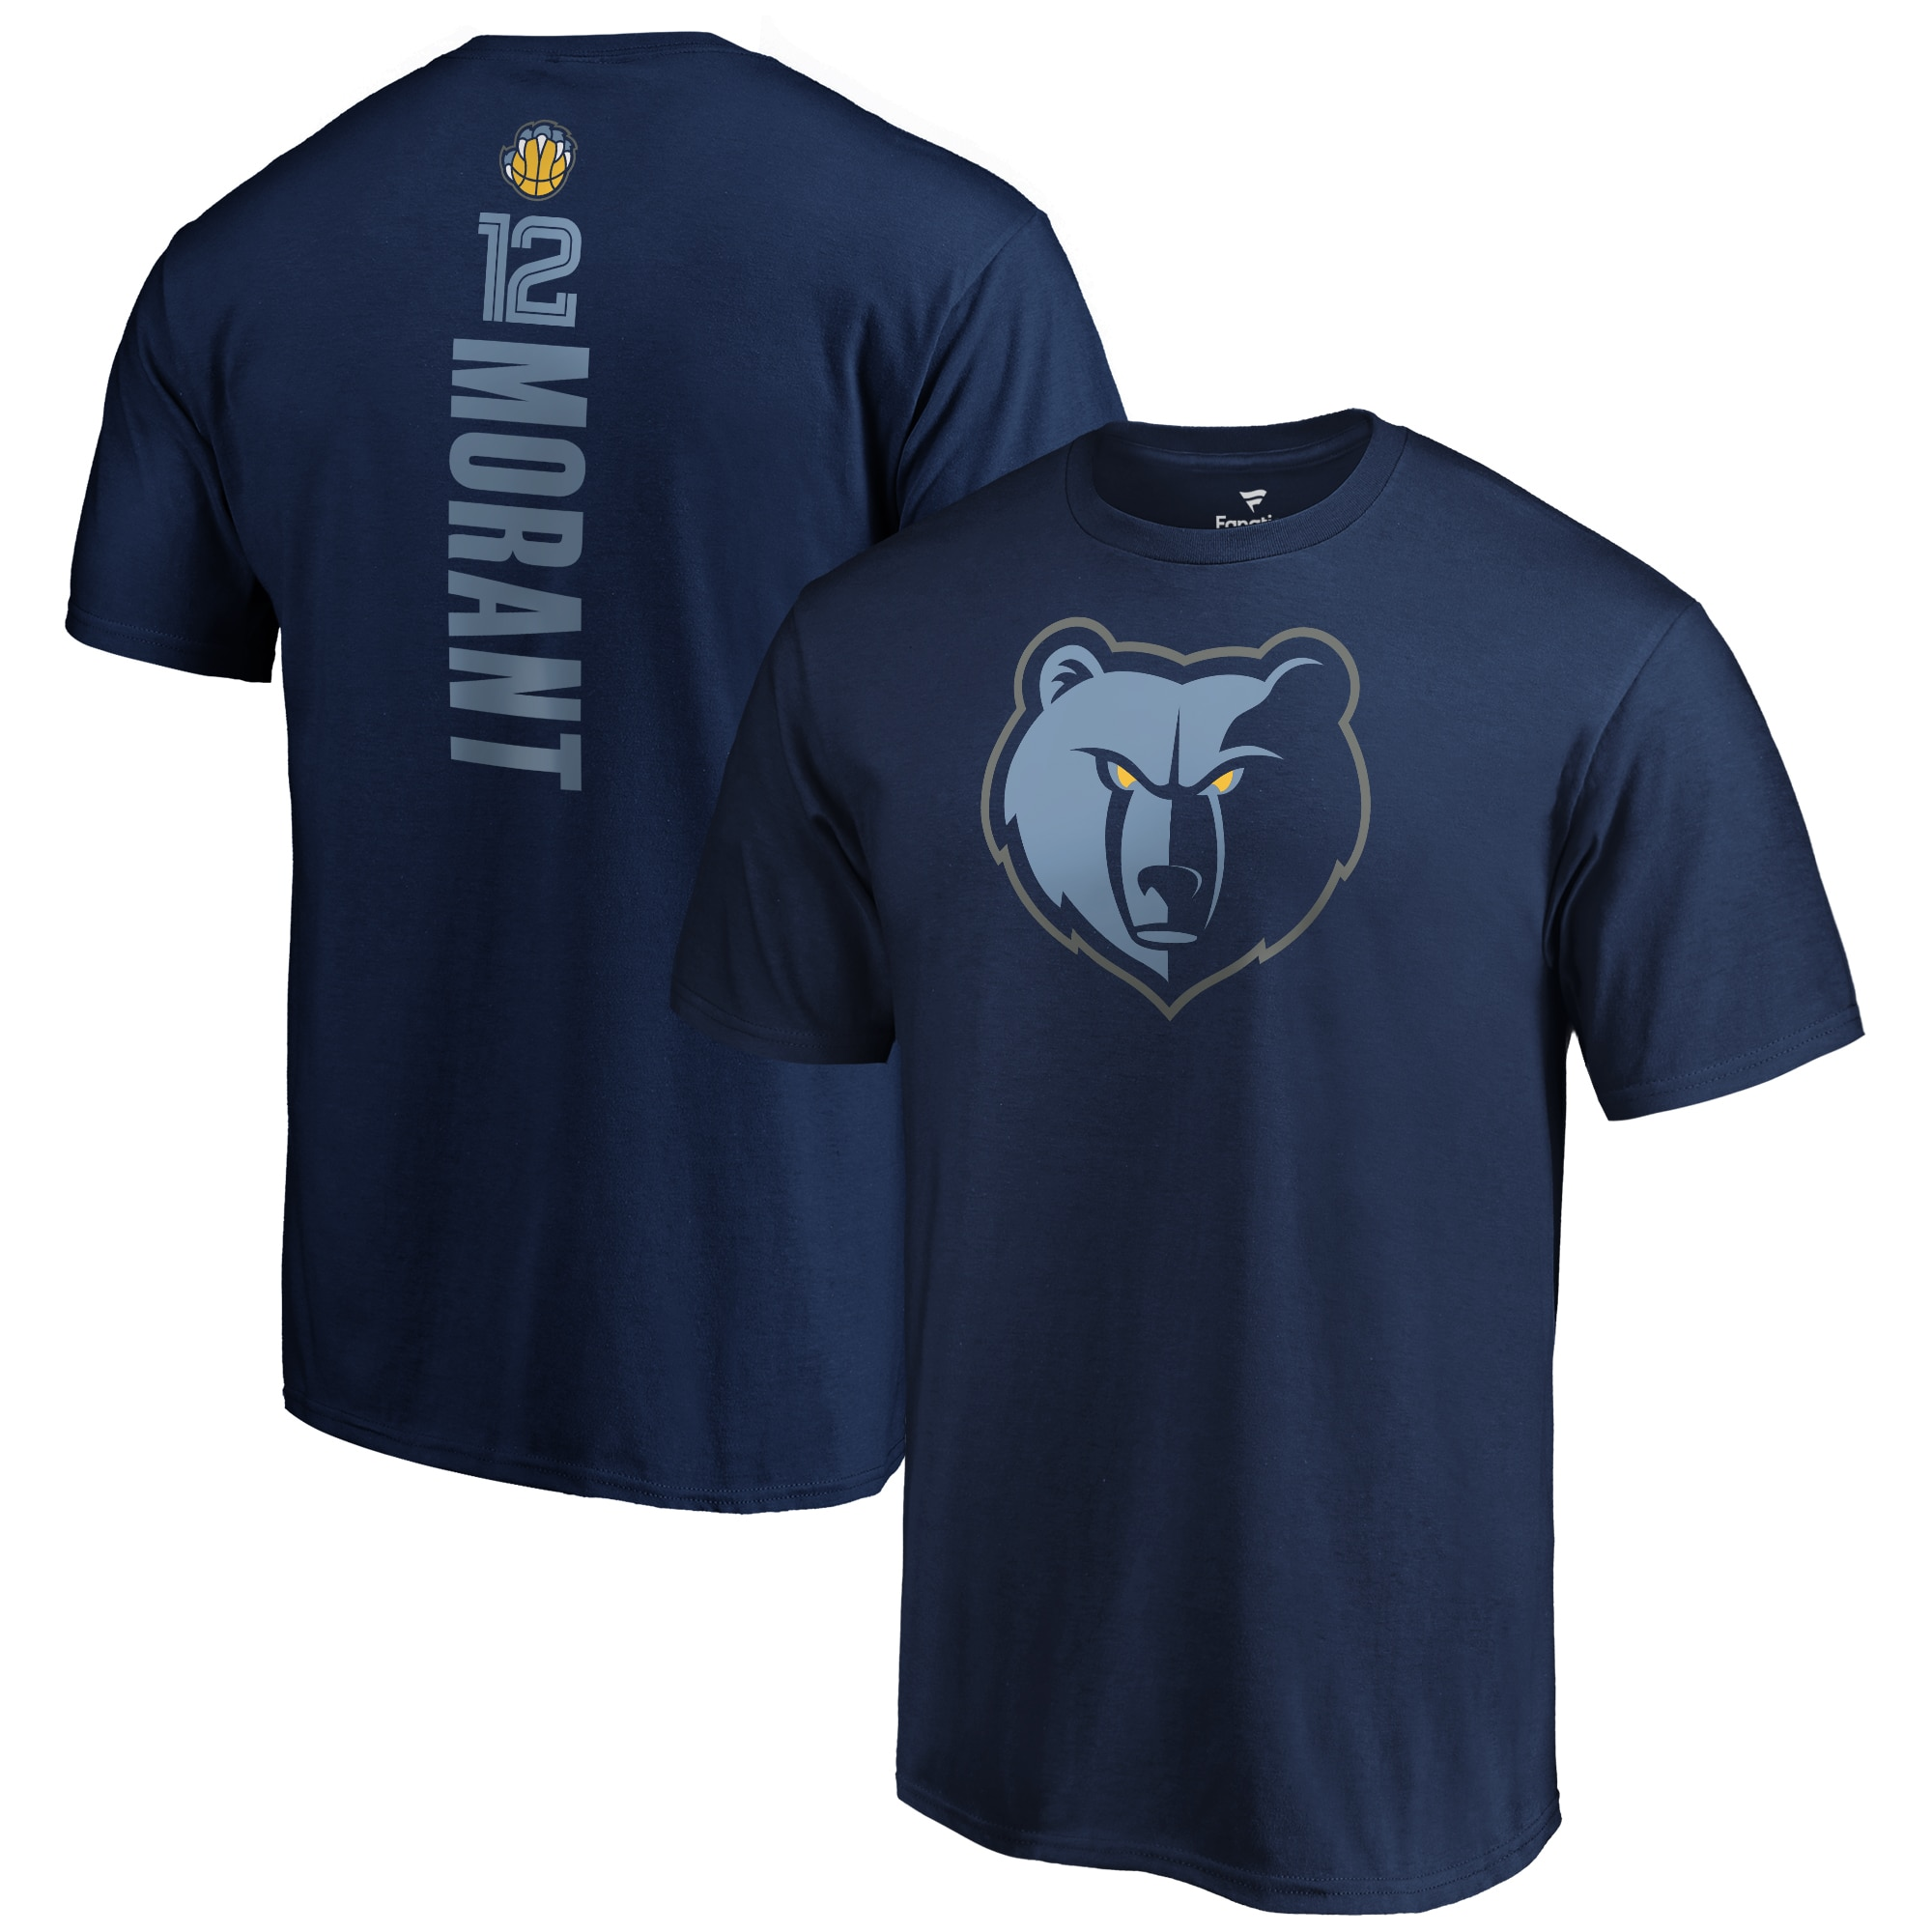 Ja Morant Memphis Grizzlies Fanatics Branded Team Playmaker Name & Number T-Shirt - Navy